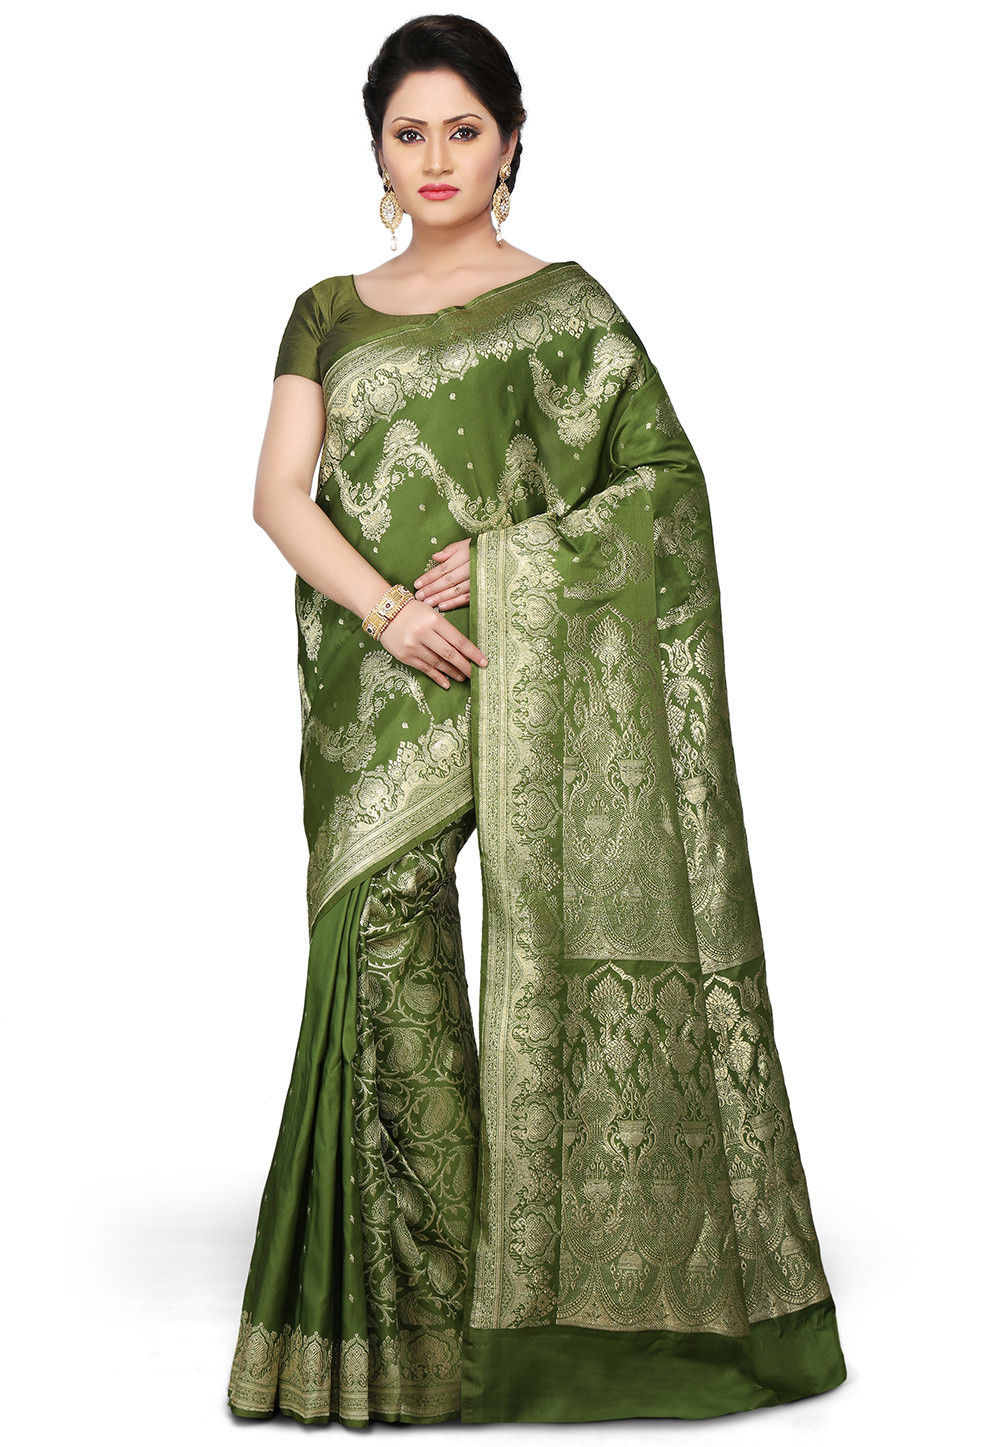 Banarasi Pure Silk Handloom Saree in Olive Green